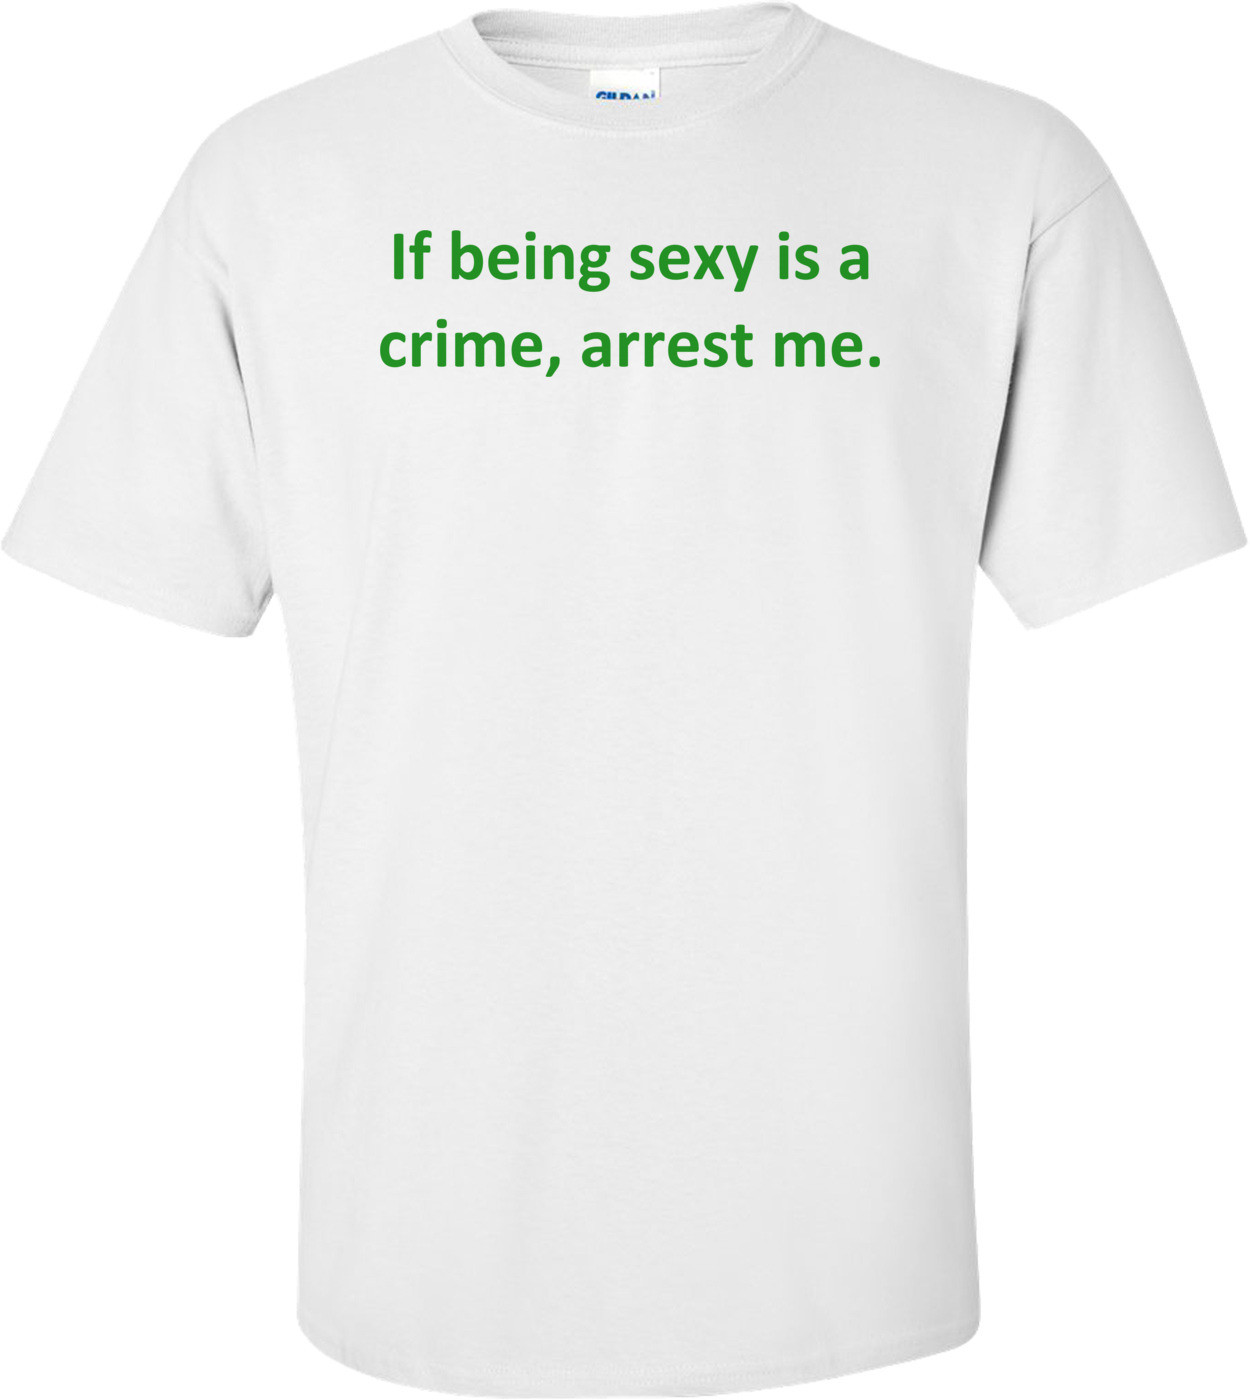 If being sexy is a crime, arrest me. Shirt